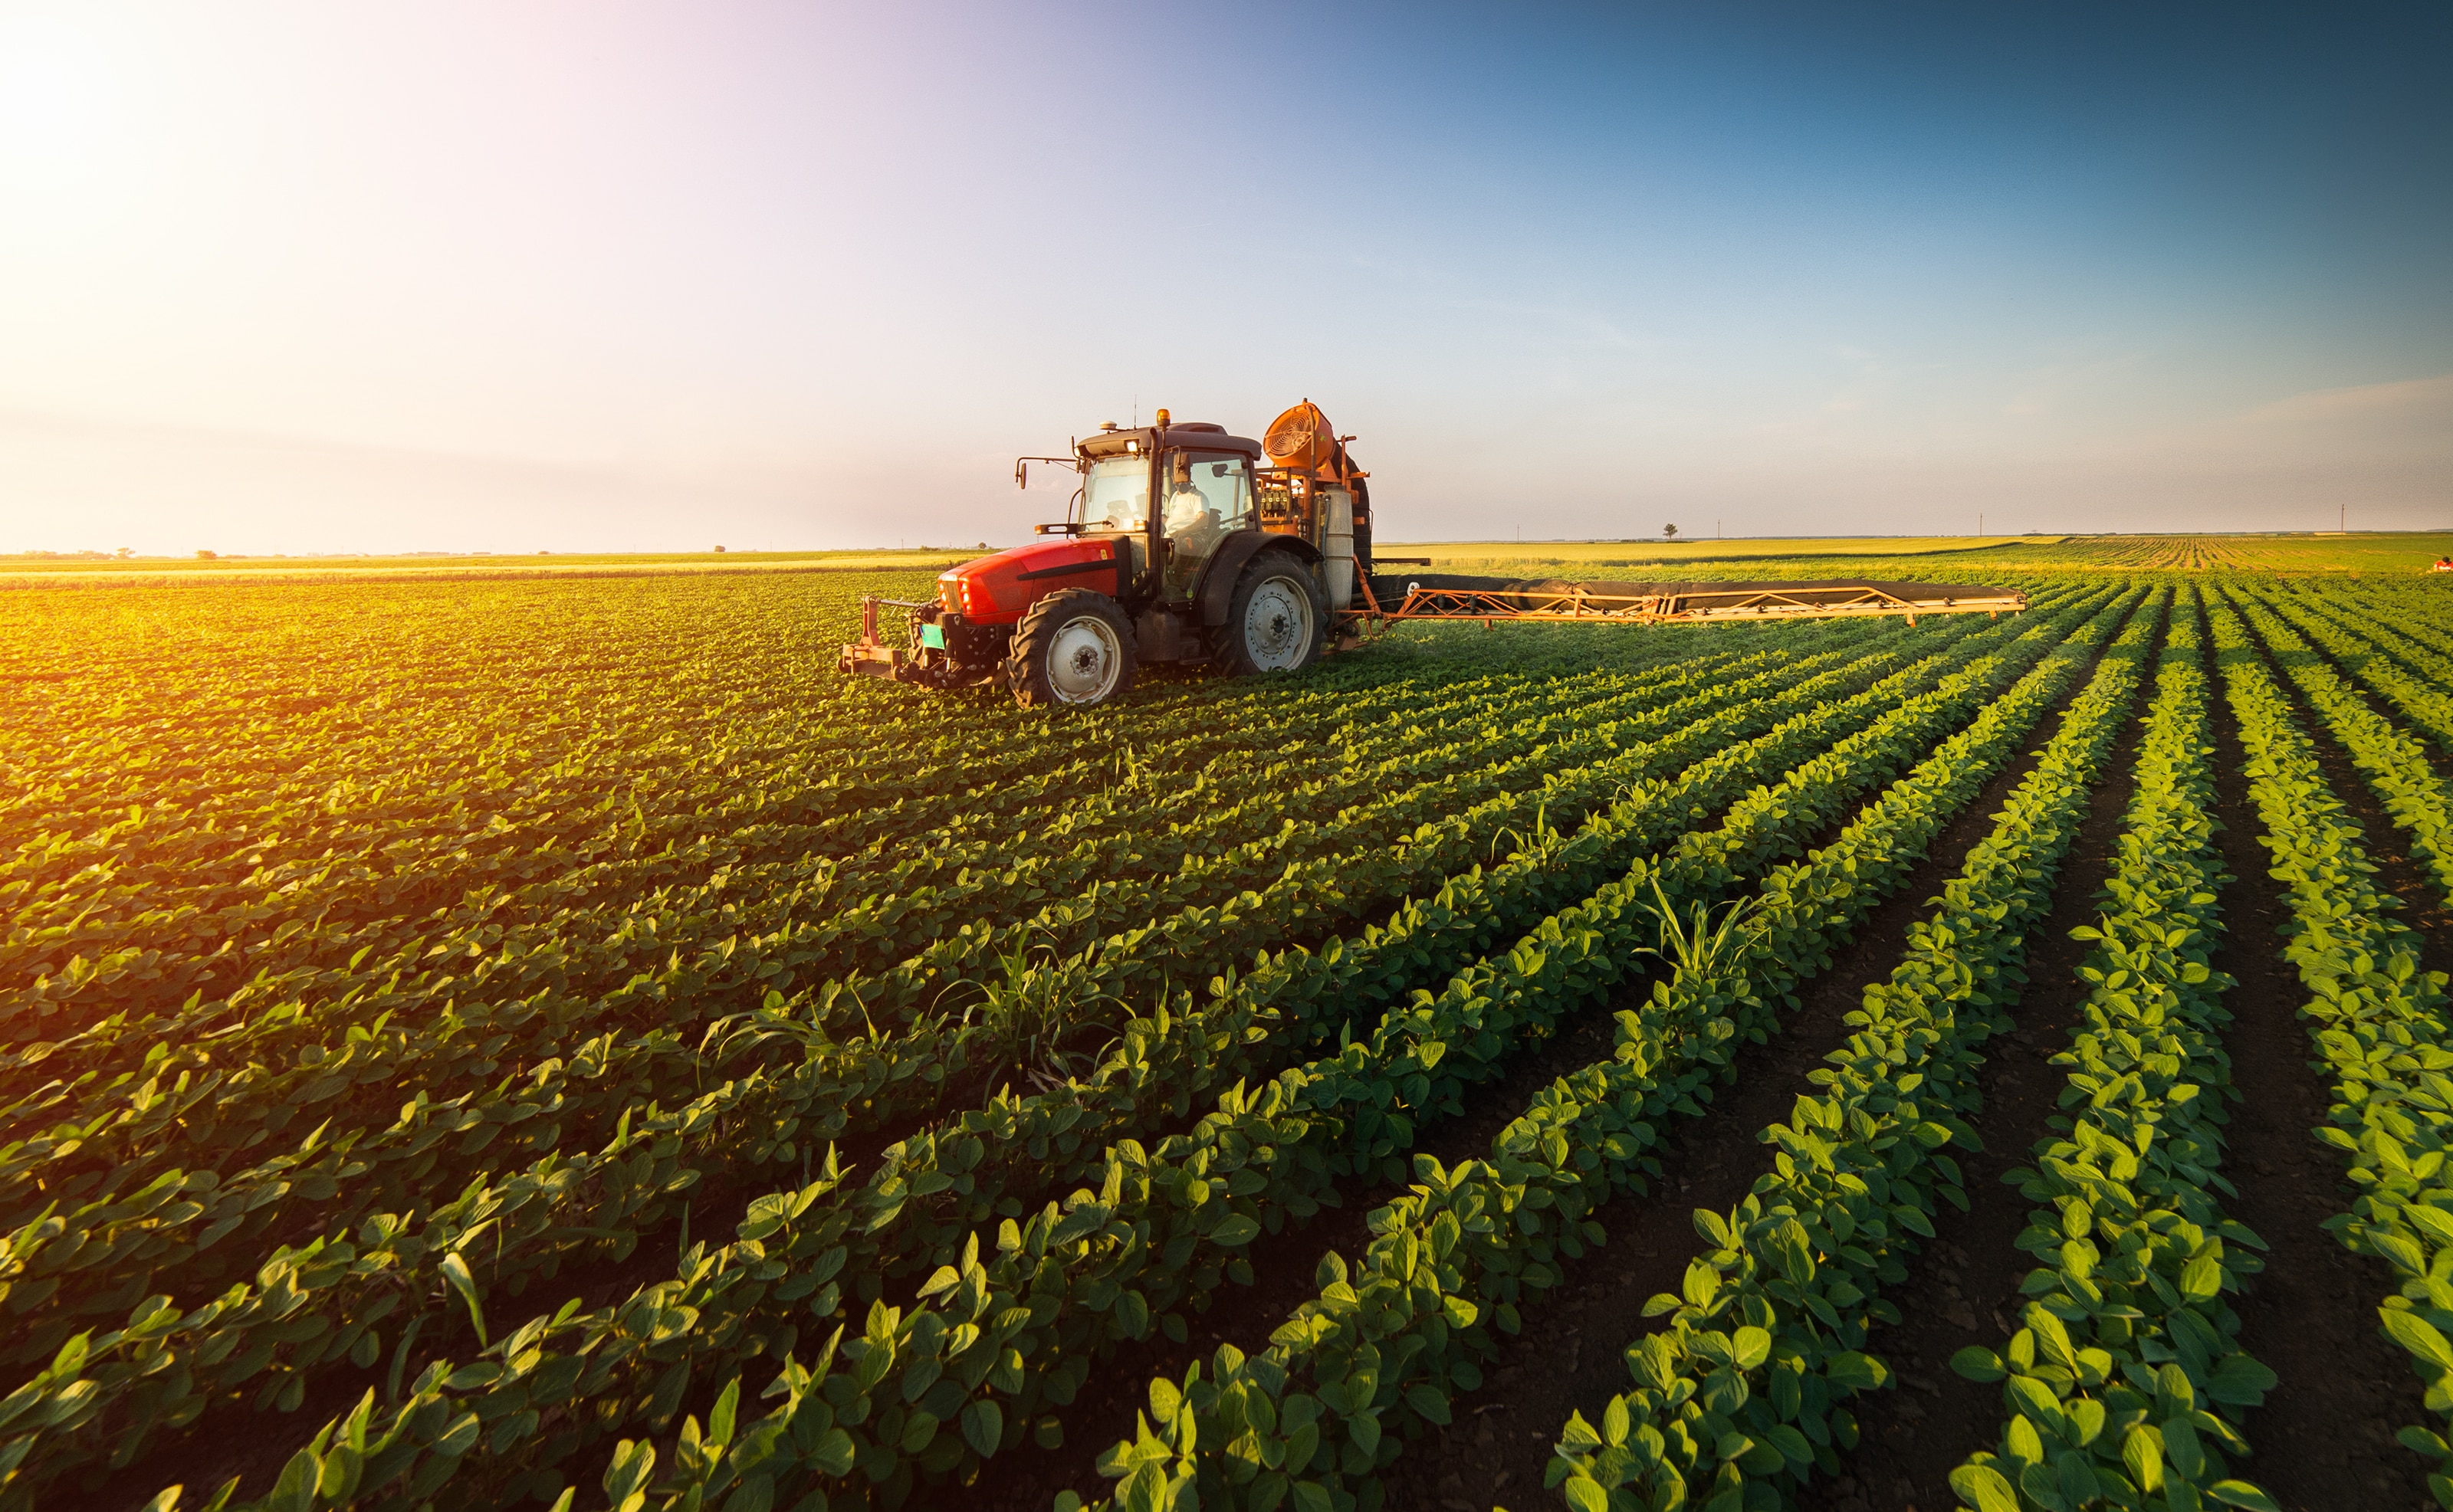 Tractor spraying pesticides on soybean field with sprayer at spring - Image